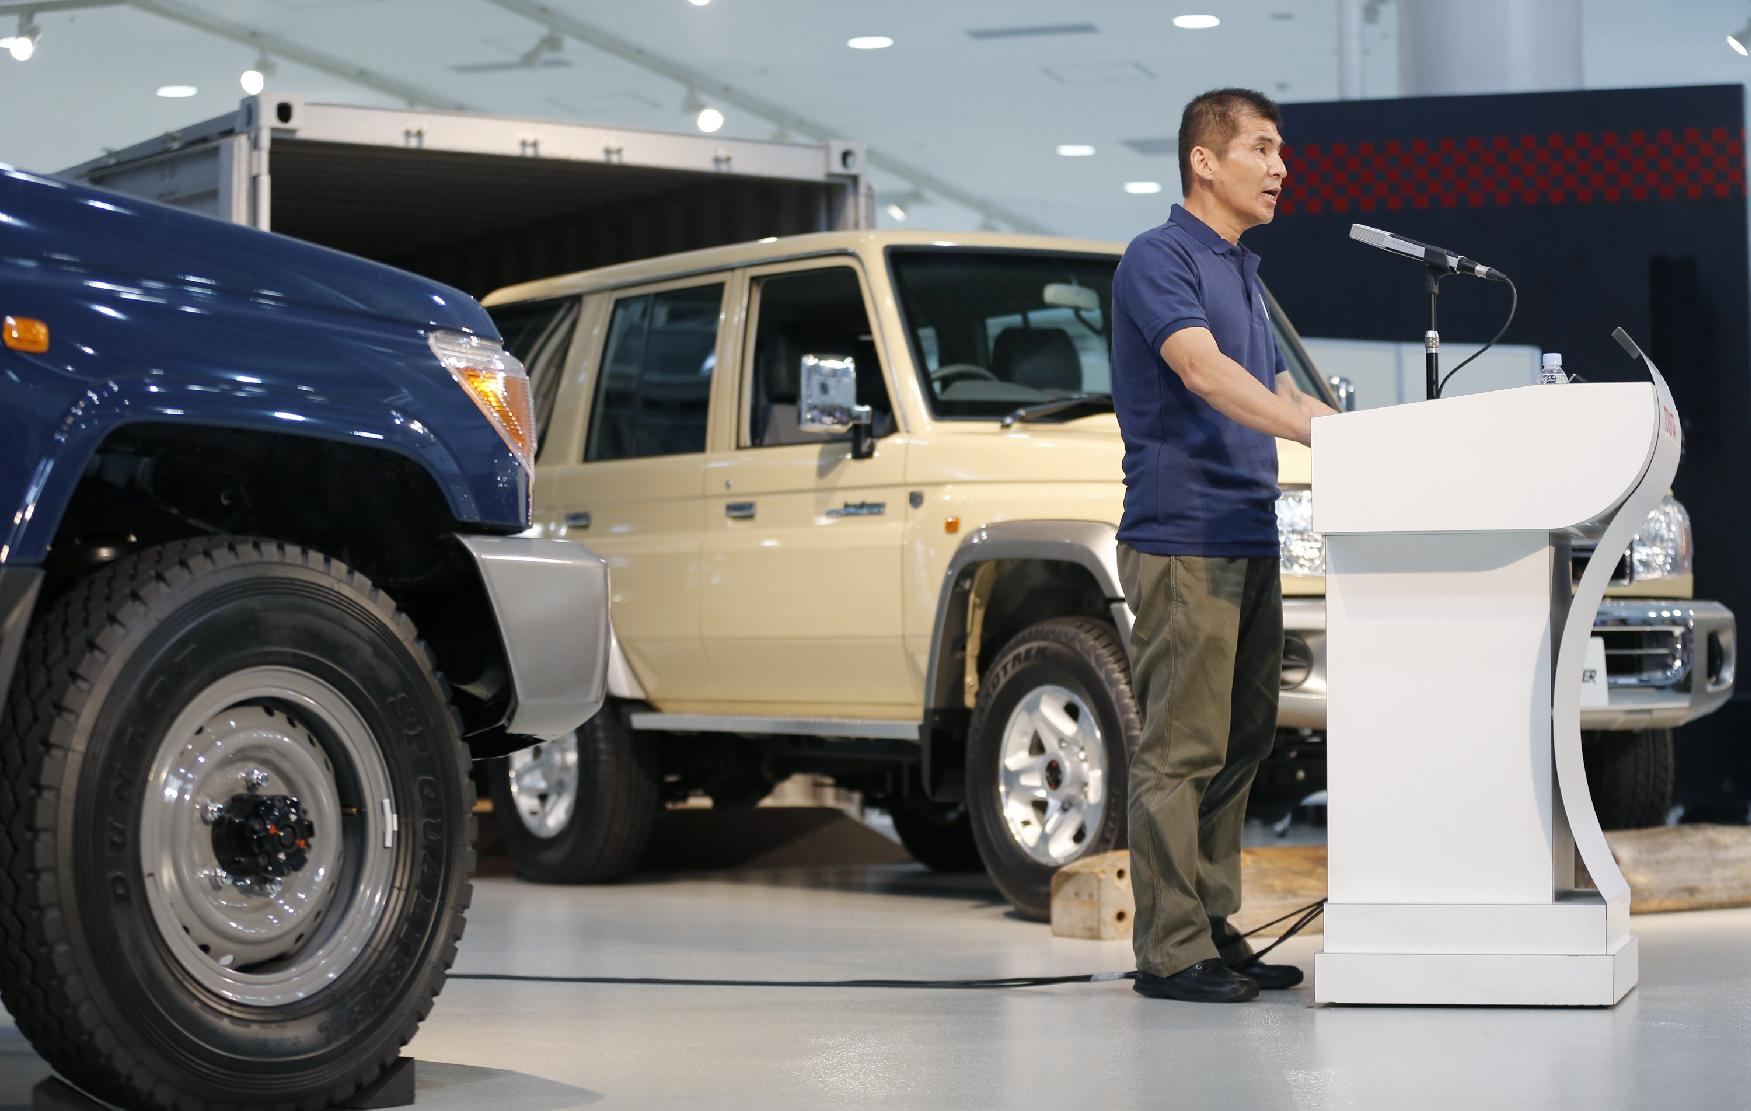 Toyota Land Cruiser chief engineer Sadayoshi Koyari speaks in front of the Land Cruiser 70 van, right, and its pickup model, left, during the Land Cruiser Motor Show at a Toyota showroom in Tokyo Monday, Aug. 25, 2014. Toyota Motor Corp. is bringing back the Land Cruiser 70 in Japan, catering to nostalgic demand for the rugged off-road vehicle. The Land Cruiser 70, the toughest of the Land Cruiser models, arrives at Japanese dealers Monday. But it's on sale for only a year. (AP Photo/Shizuo Kambayashi)